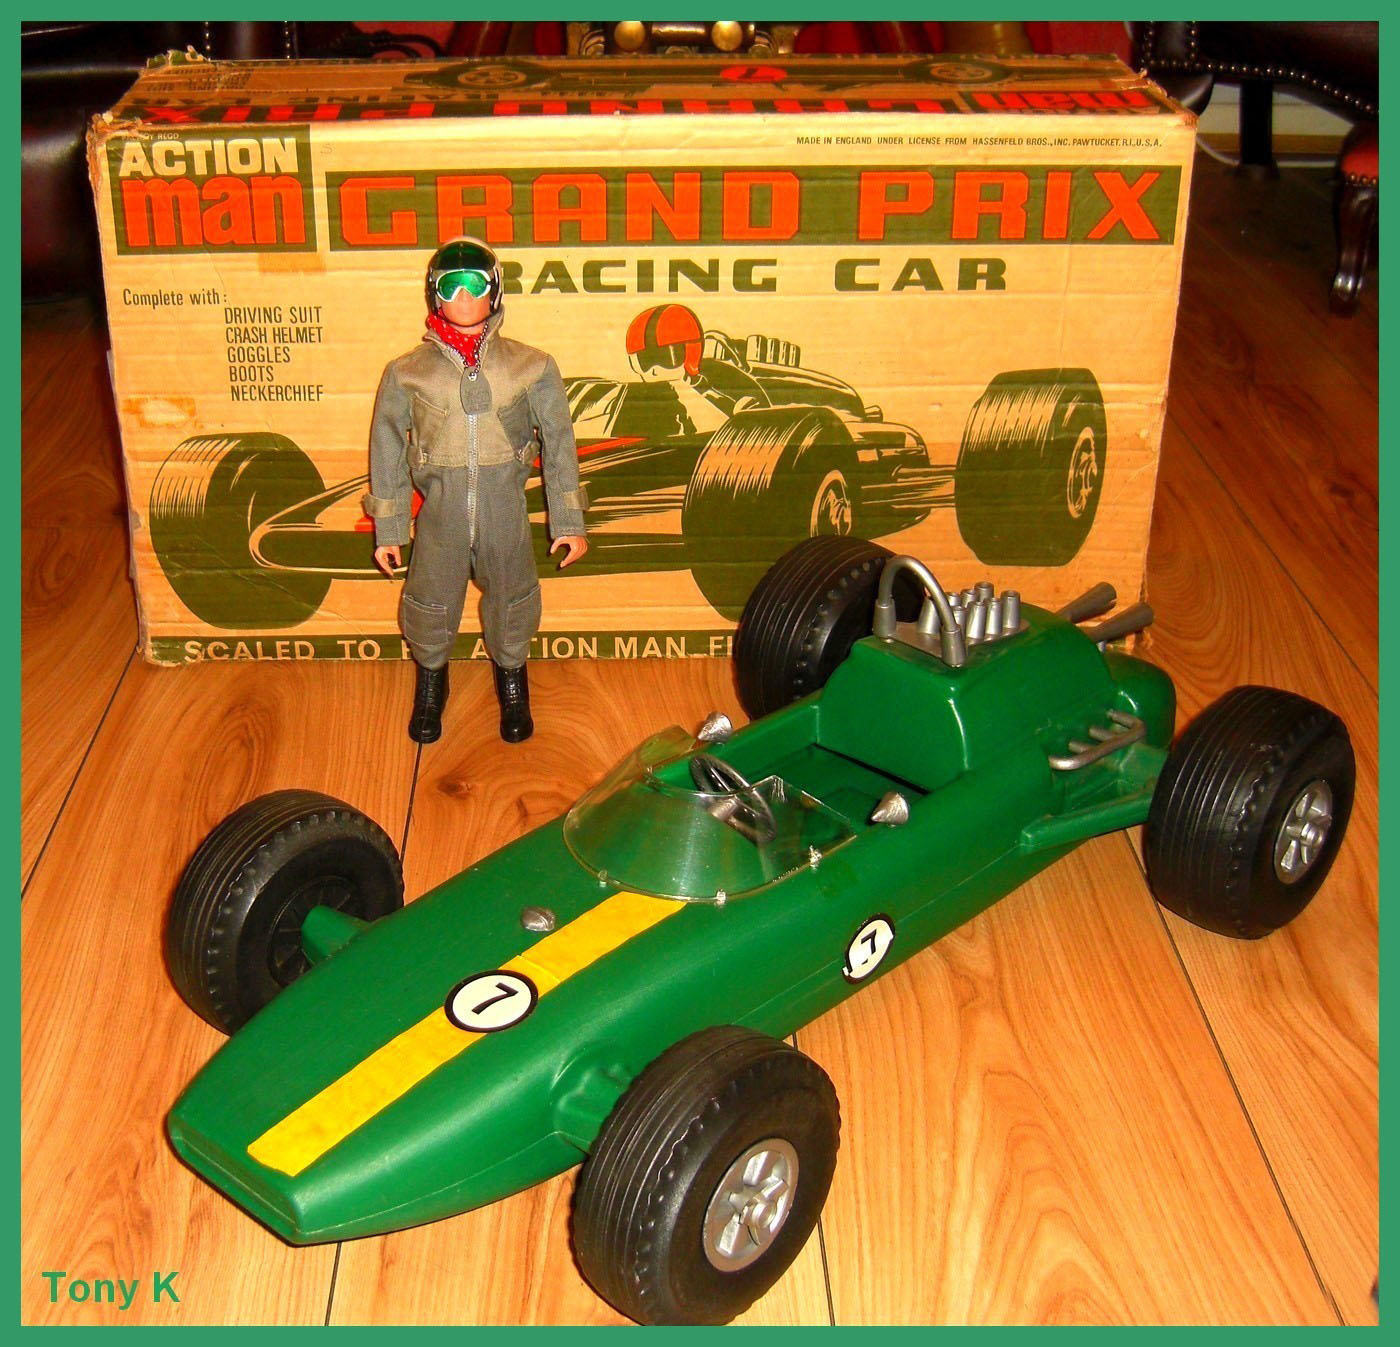 It Was Released At The Start Of The 1970u0027s And Had A Short Shelf Life Of  Approx Two Years. It Was An Exciting Time For Action Man... The Bullet  Holes Had ...